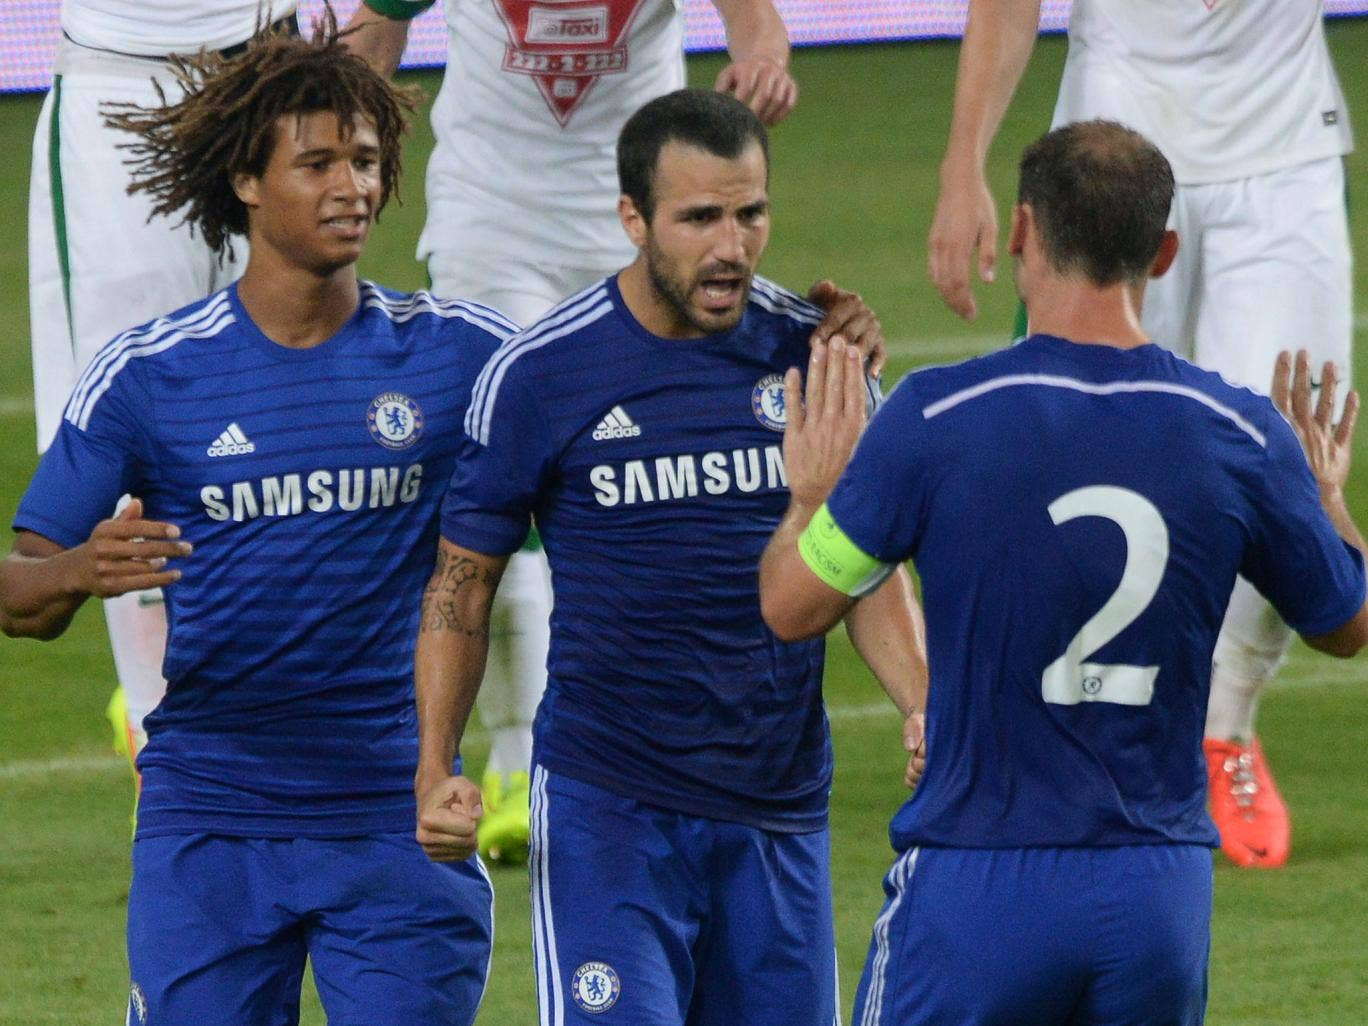 Frank Lampard is the past and Cesc Fabregas (centre) the future of Chelsea, says Jose Mourinho